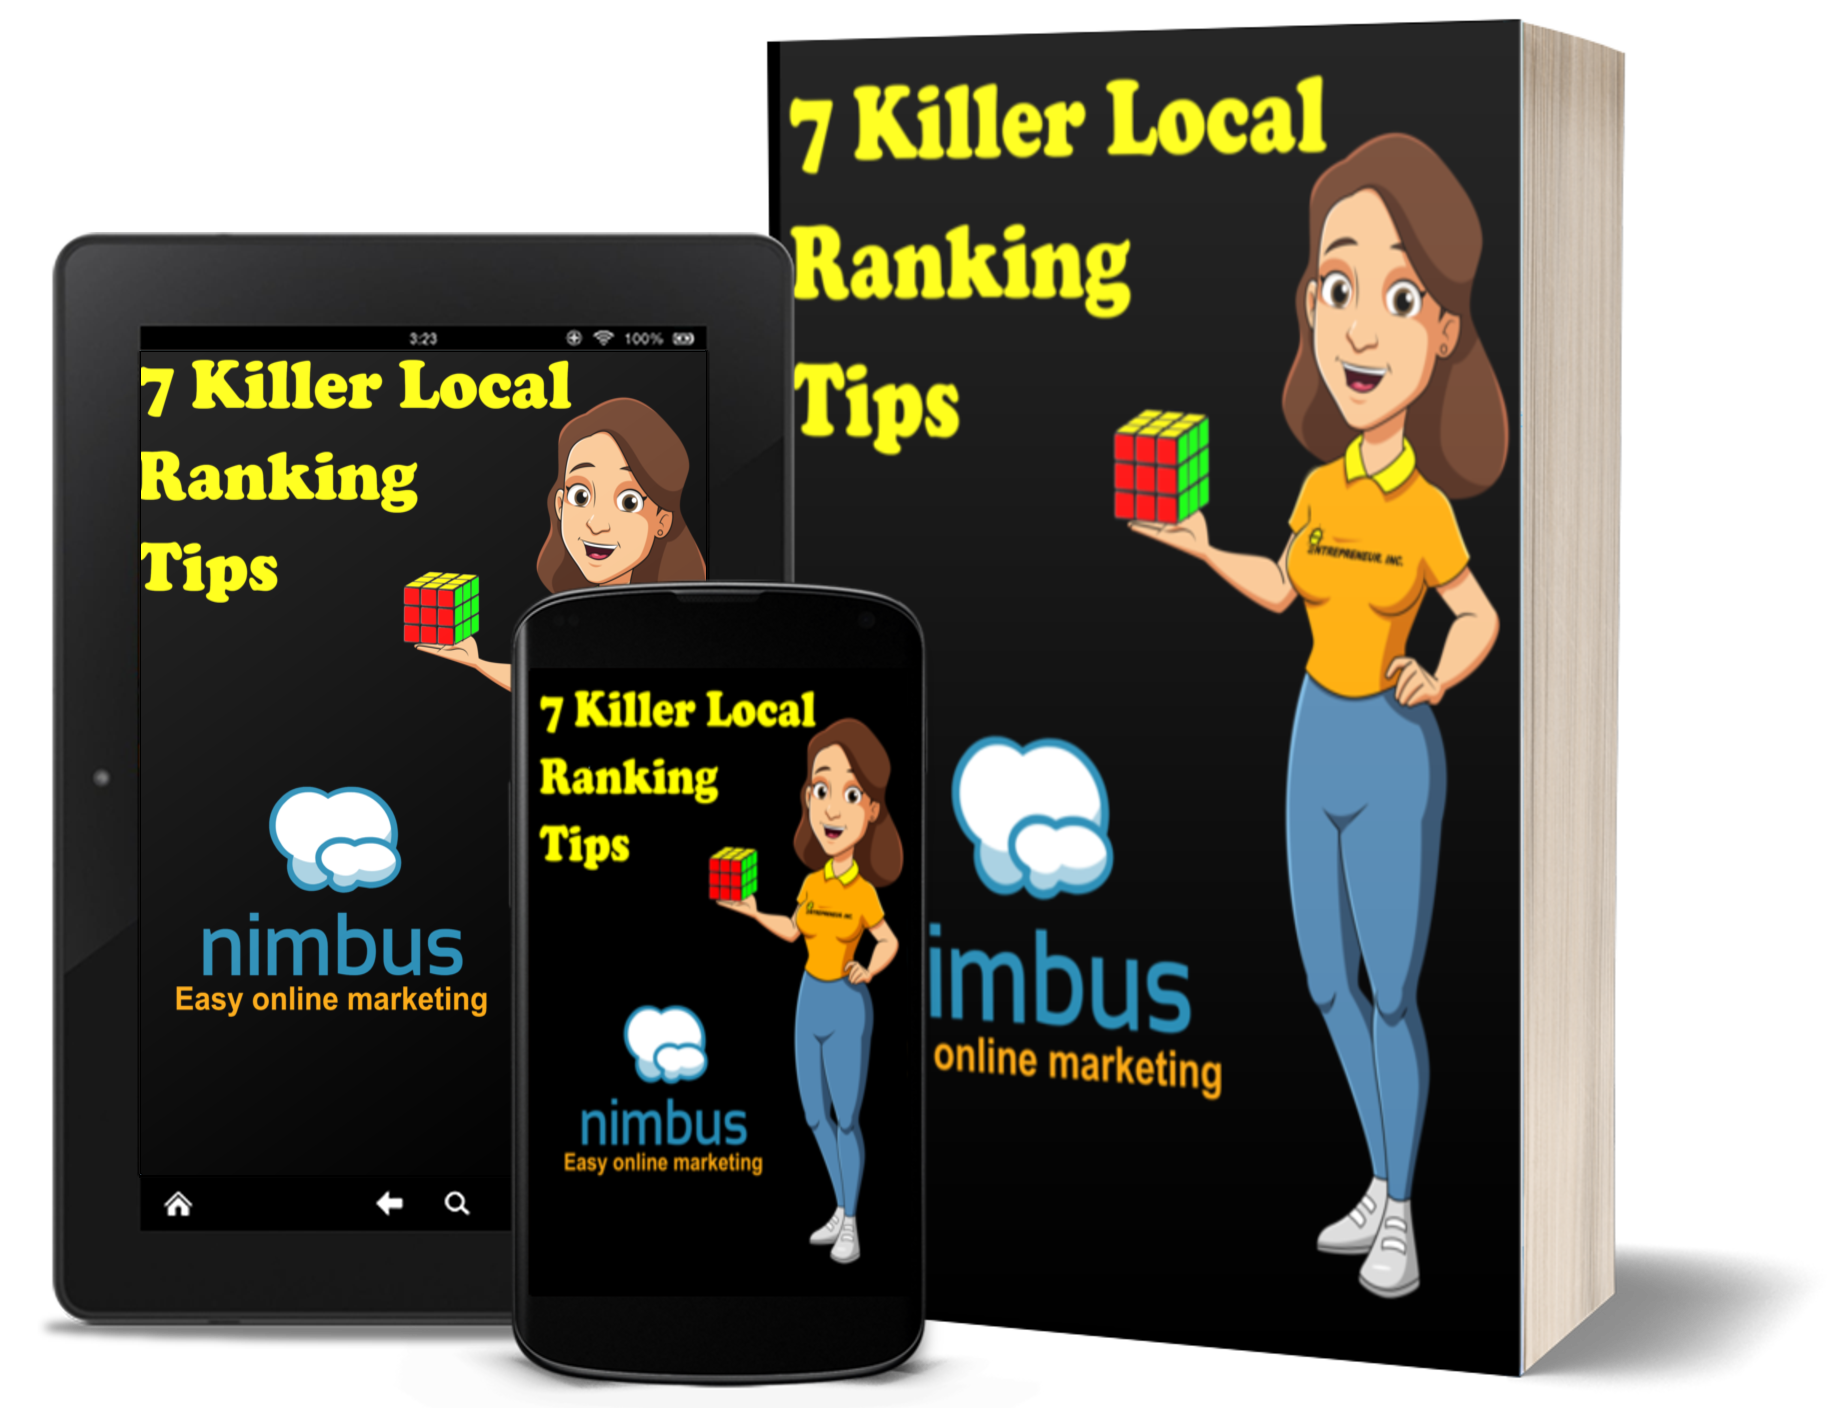 Nimbus' local search optimization tips guide can be viewed on many devices